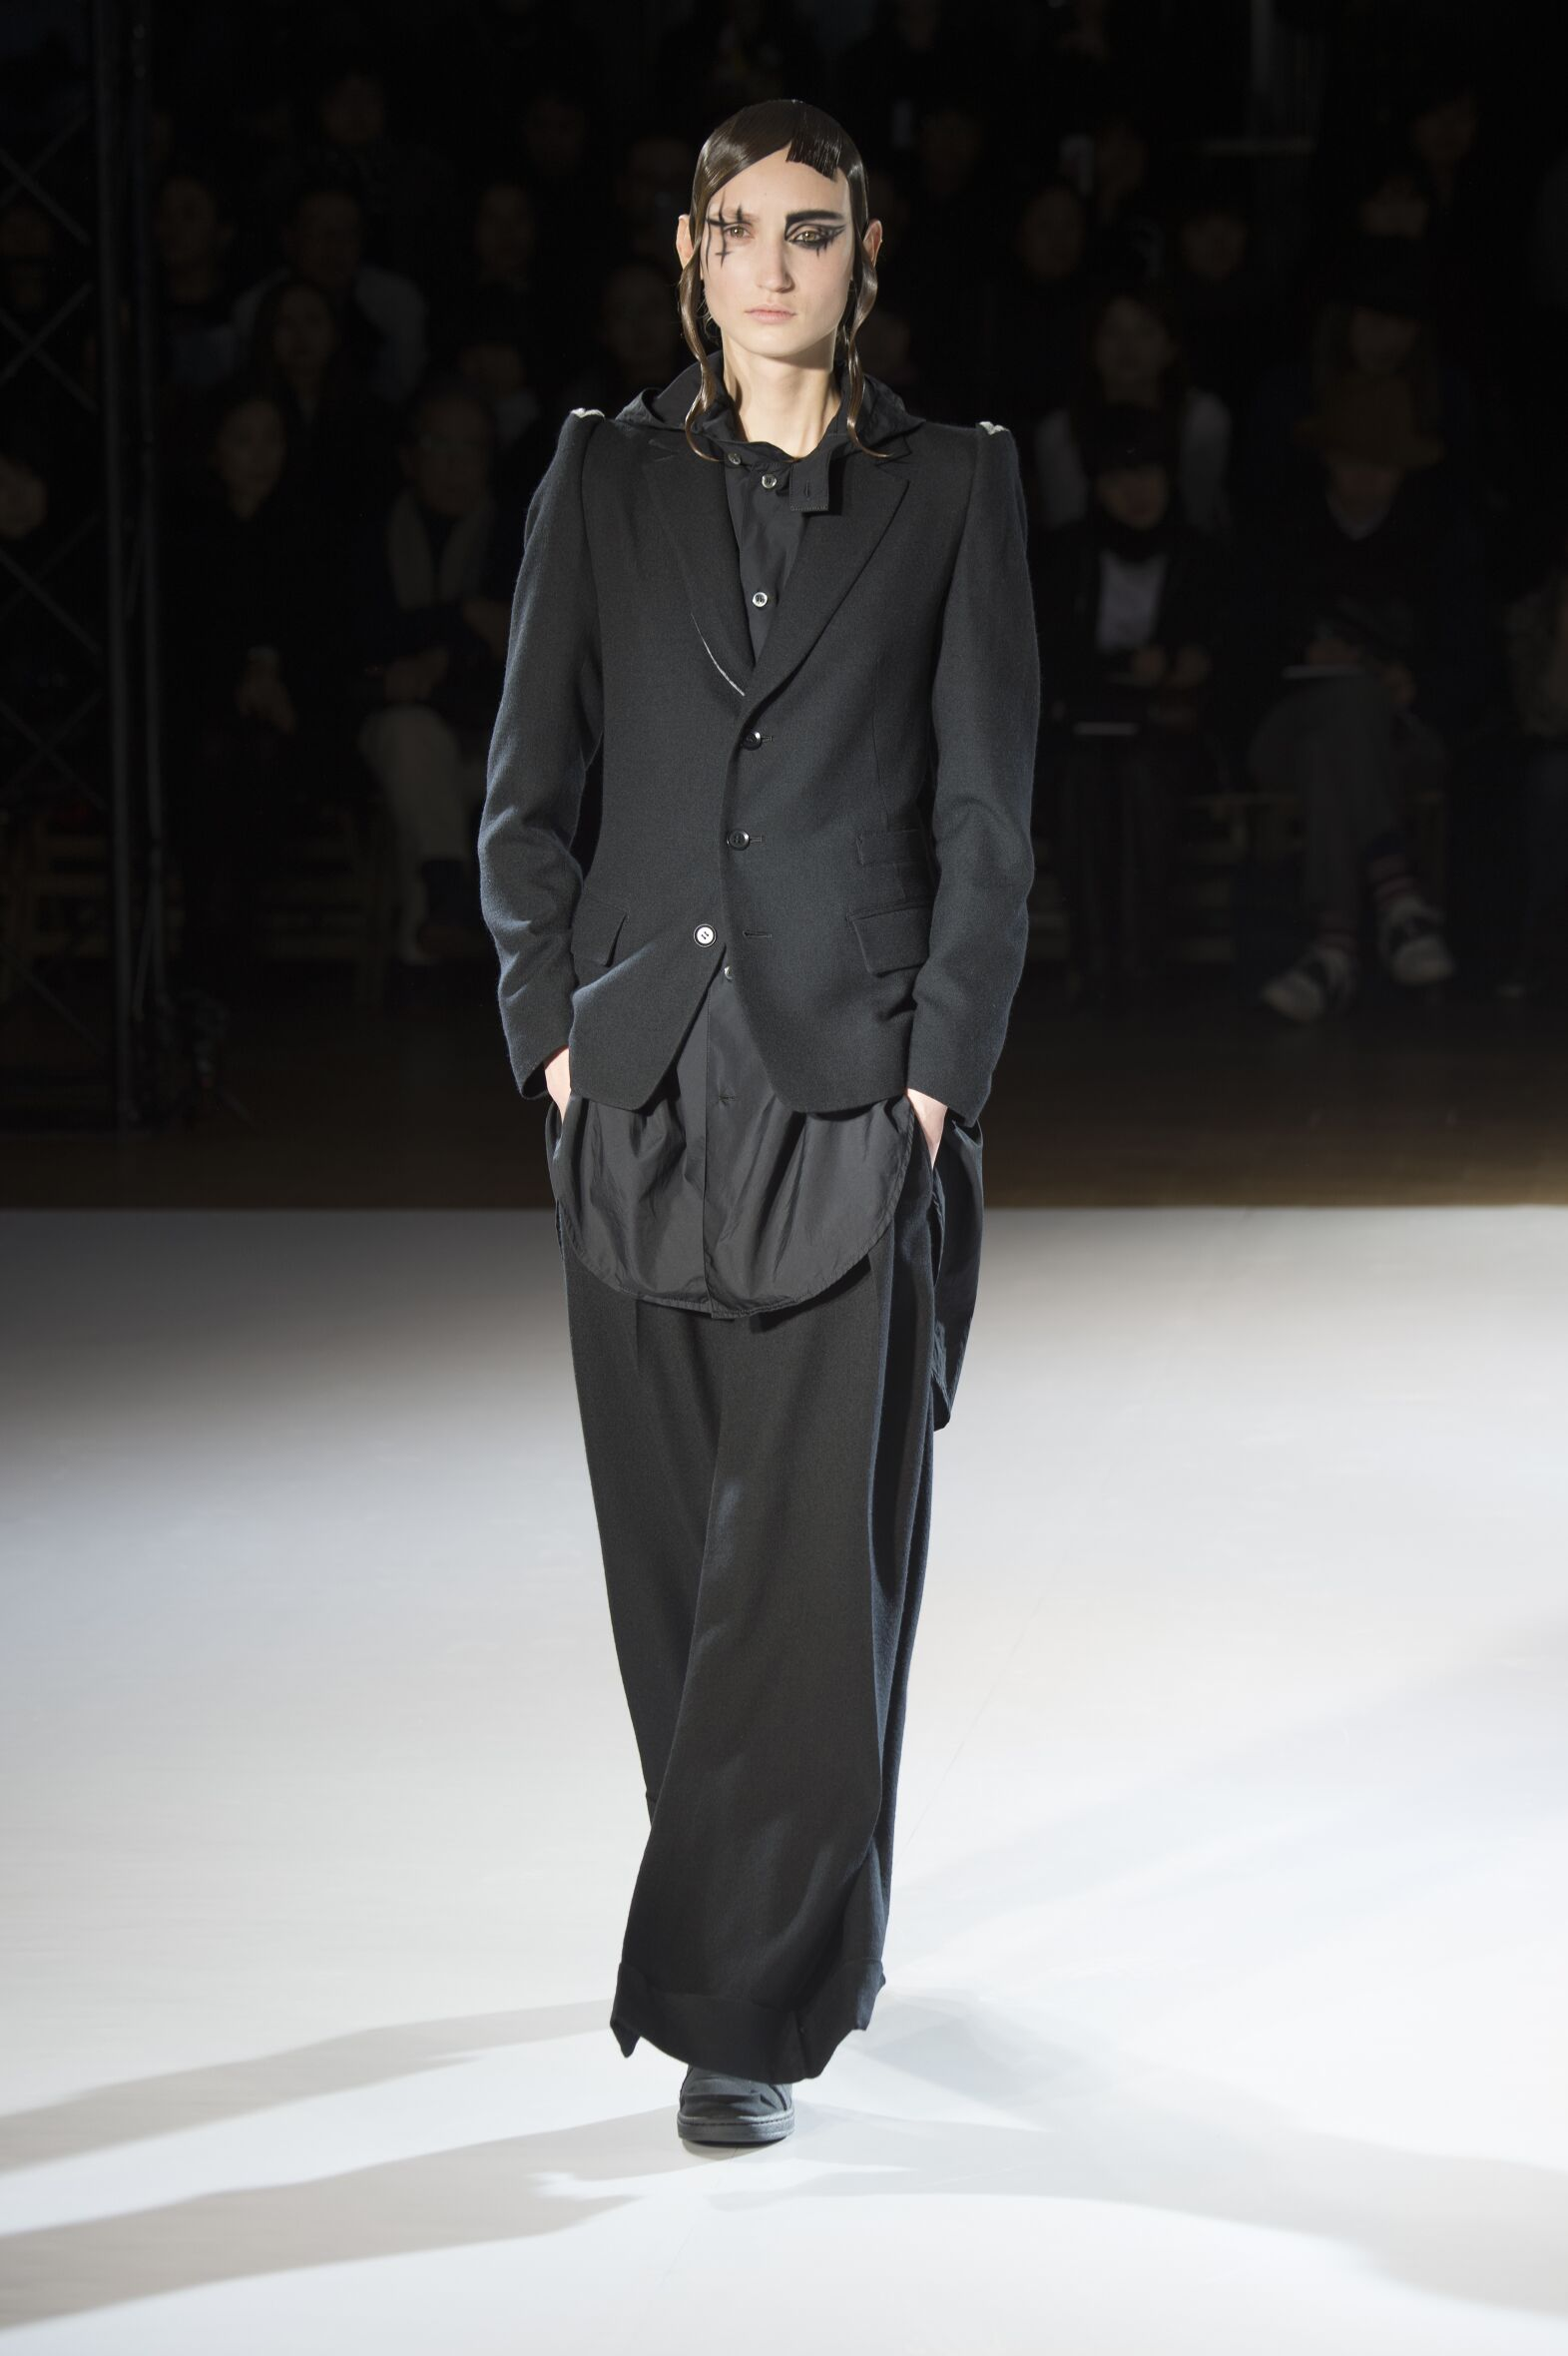 Runway Yohji Yamamoto Fall Winter 2015 16 Women's Collection Paris Fashion Week